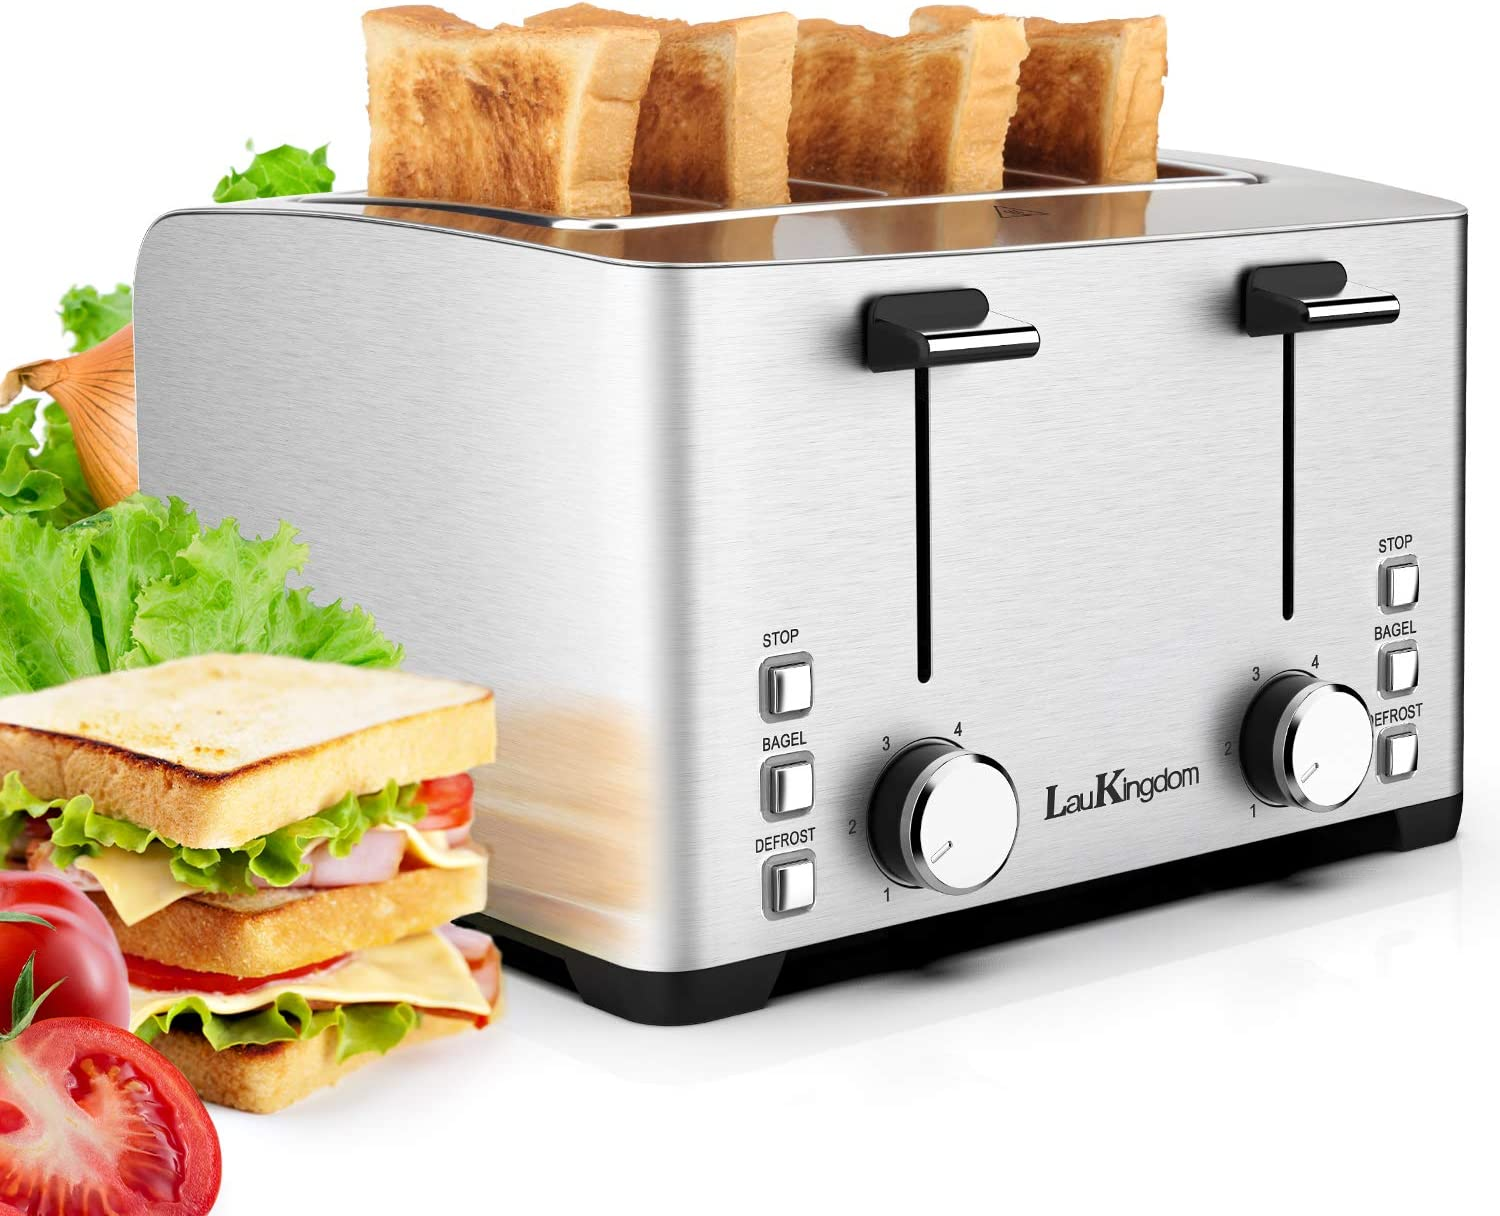 "4 Slice Toaster,LauKingdom Extra Wide Slot Toaster with 6 Bread Shade Settings,Bagel/Defrost/Stop Function,1.57"" Wide Slots Toaster,1500W Silver"